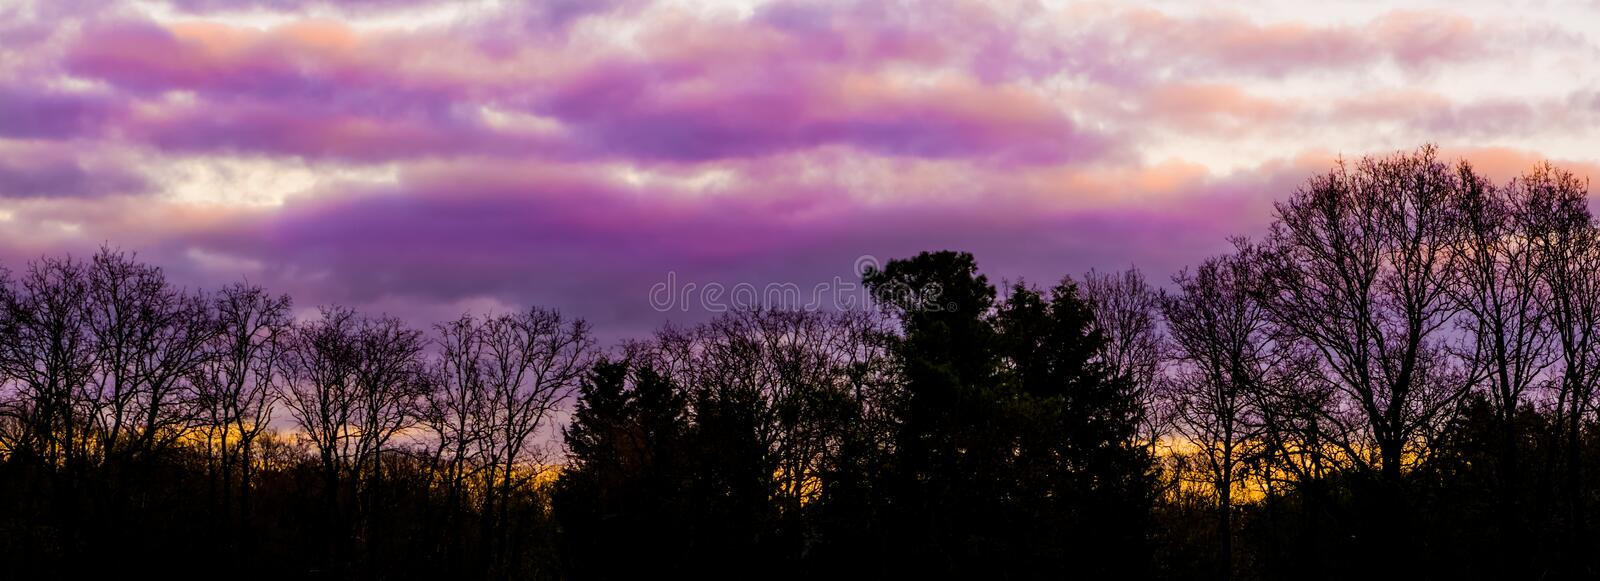 Pink and purple polar stratospheric clouds in a forest landscape, a weather phenomenon that rarely occurs in winter, beautiful stock photos